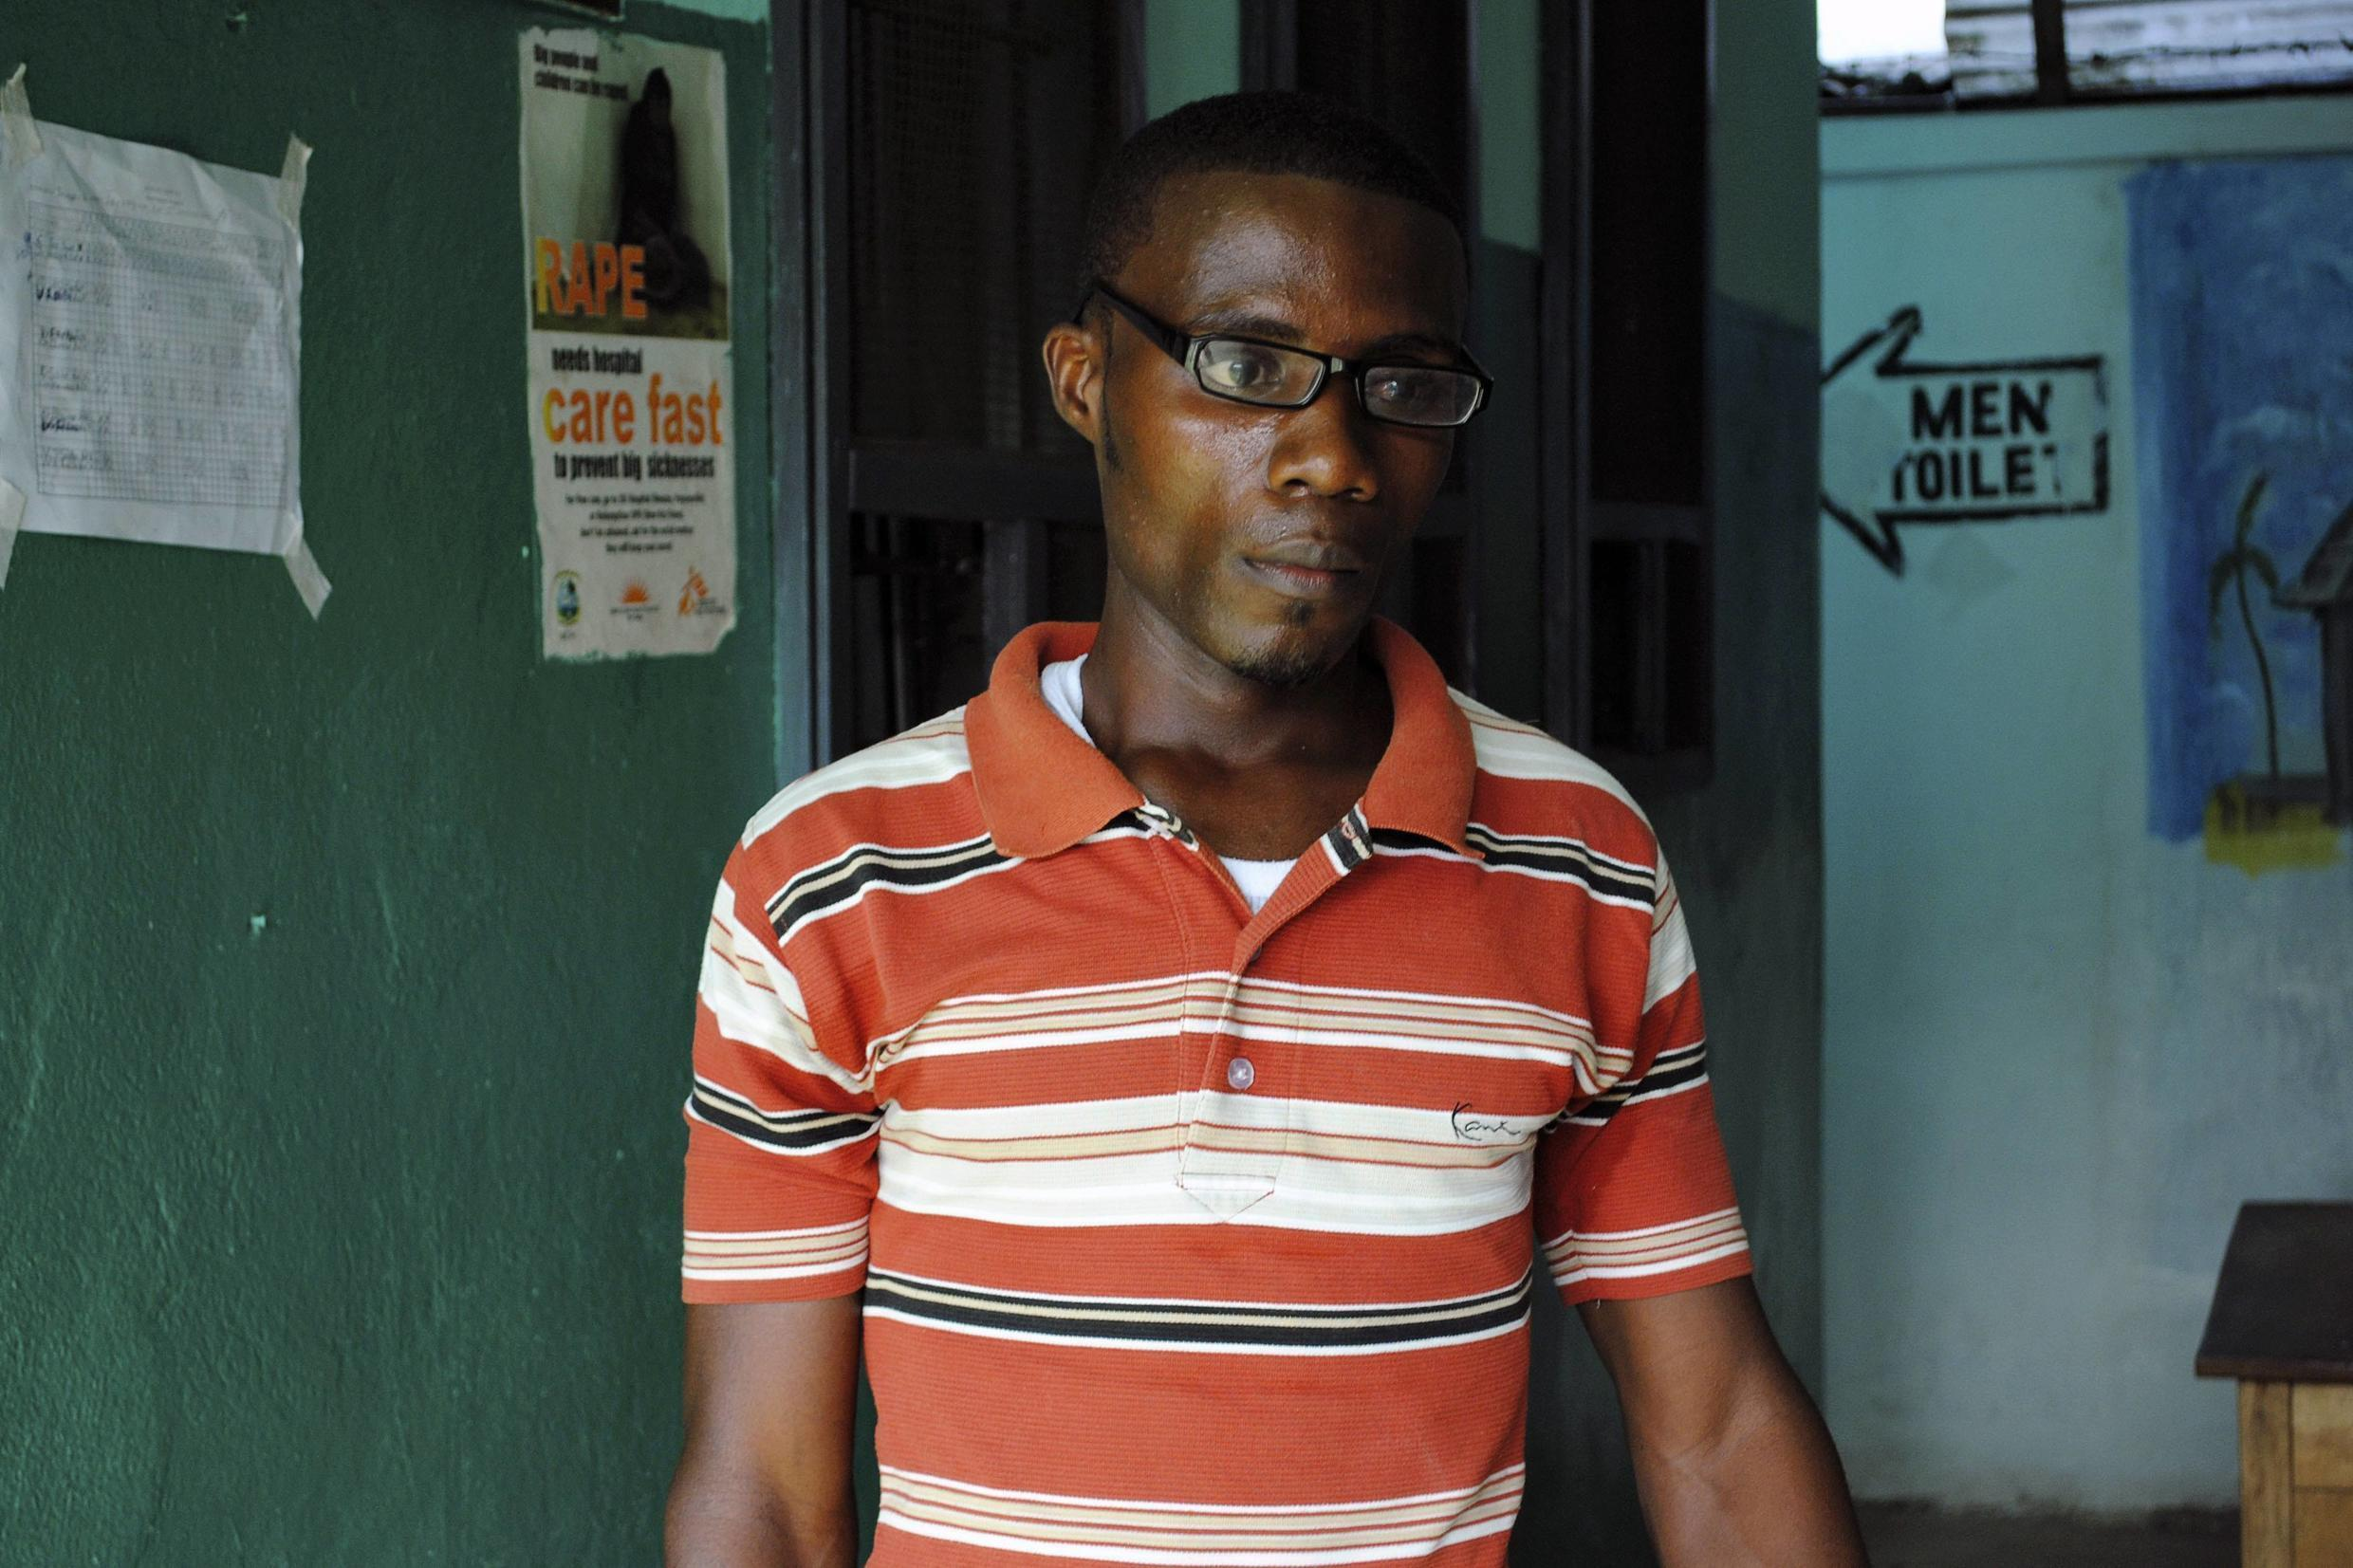 Ebola survivor Romeo Doe poses for a picture at a clinic in Monrovia, 1 February 2015.